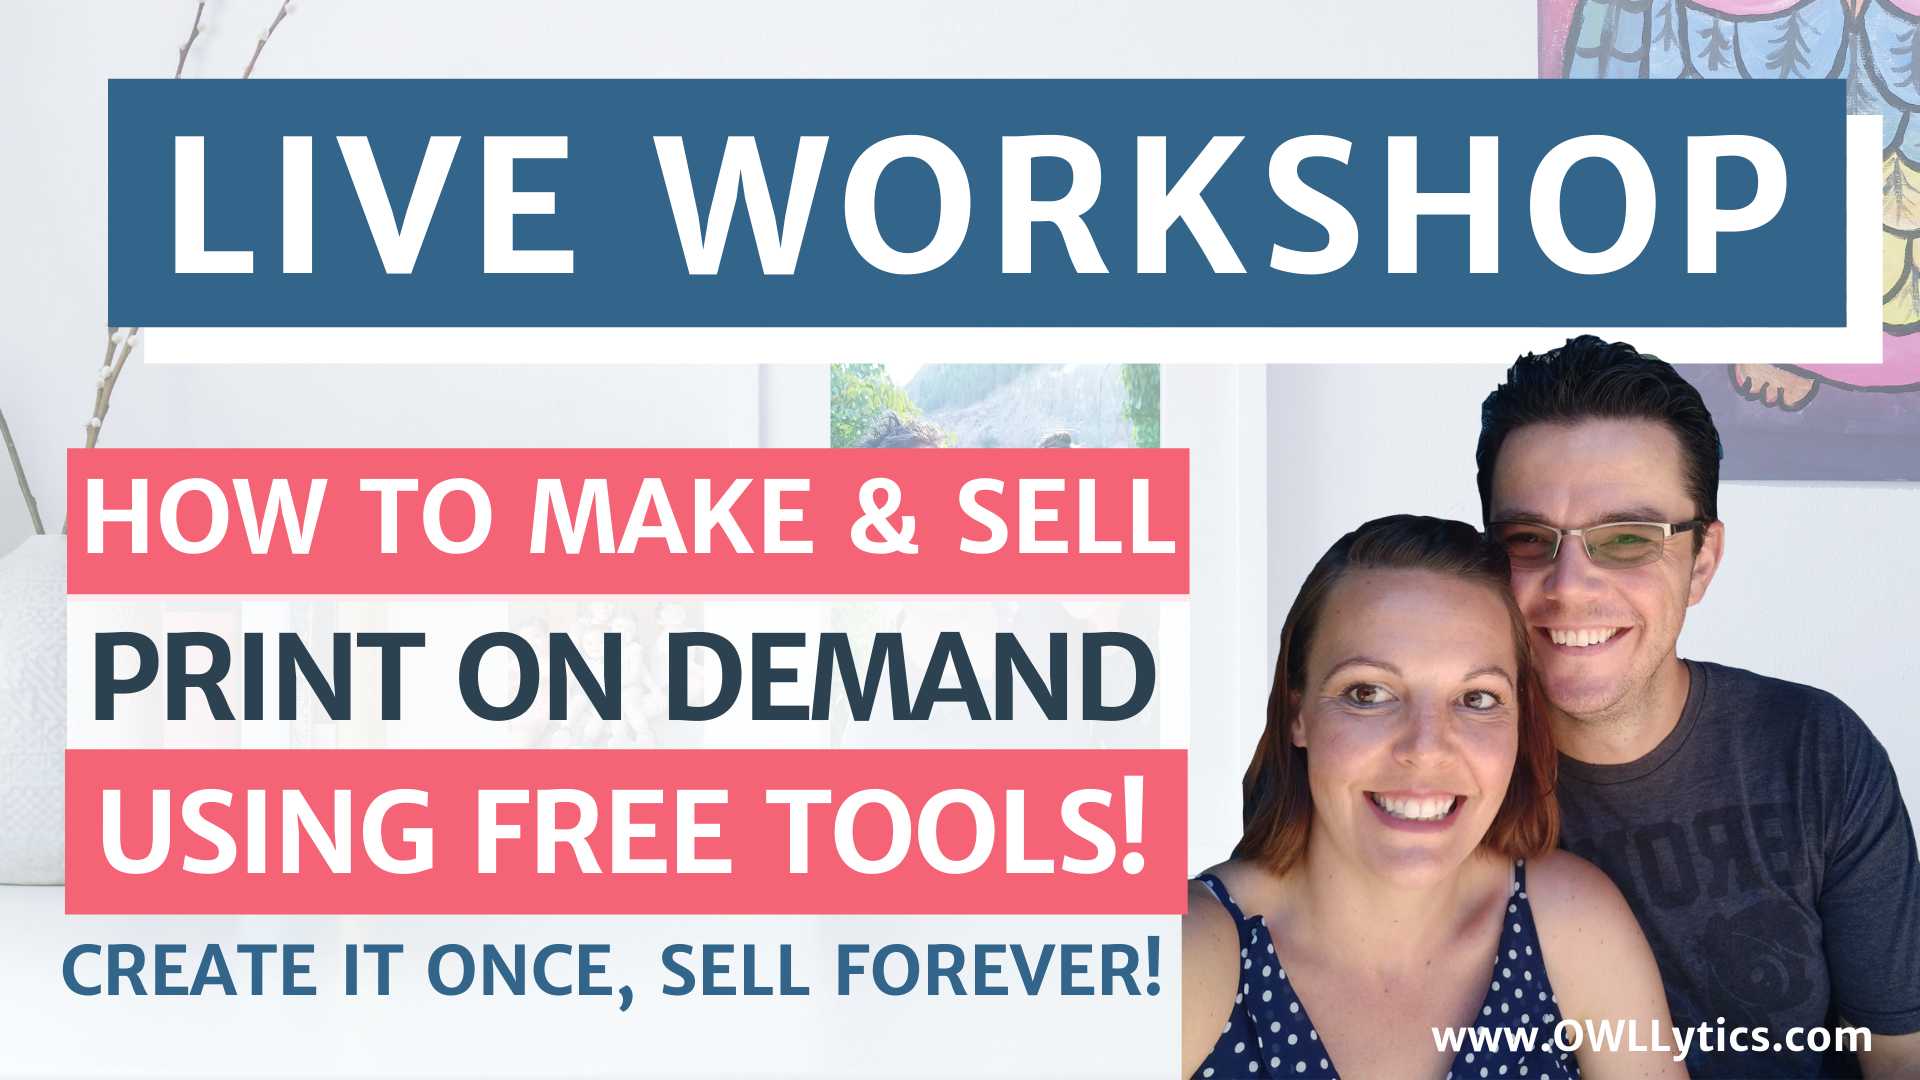 Free Workshop: Learn How To EASILY Make & Sell Digital Products Using Free Canva Tools!